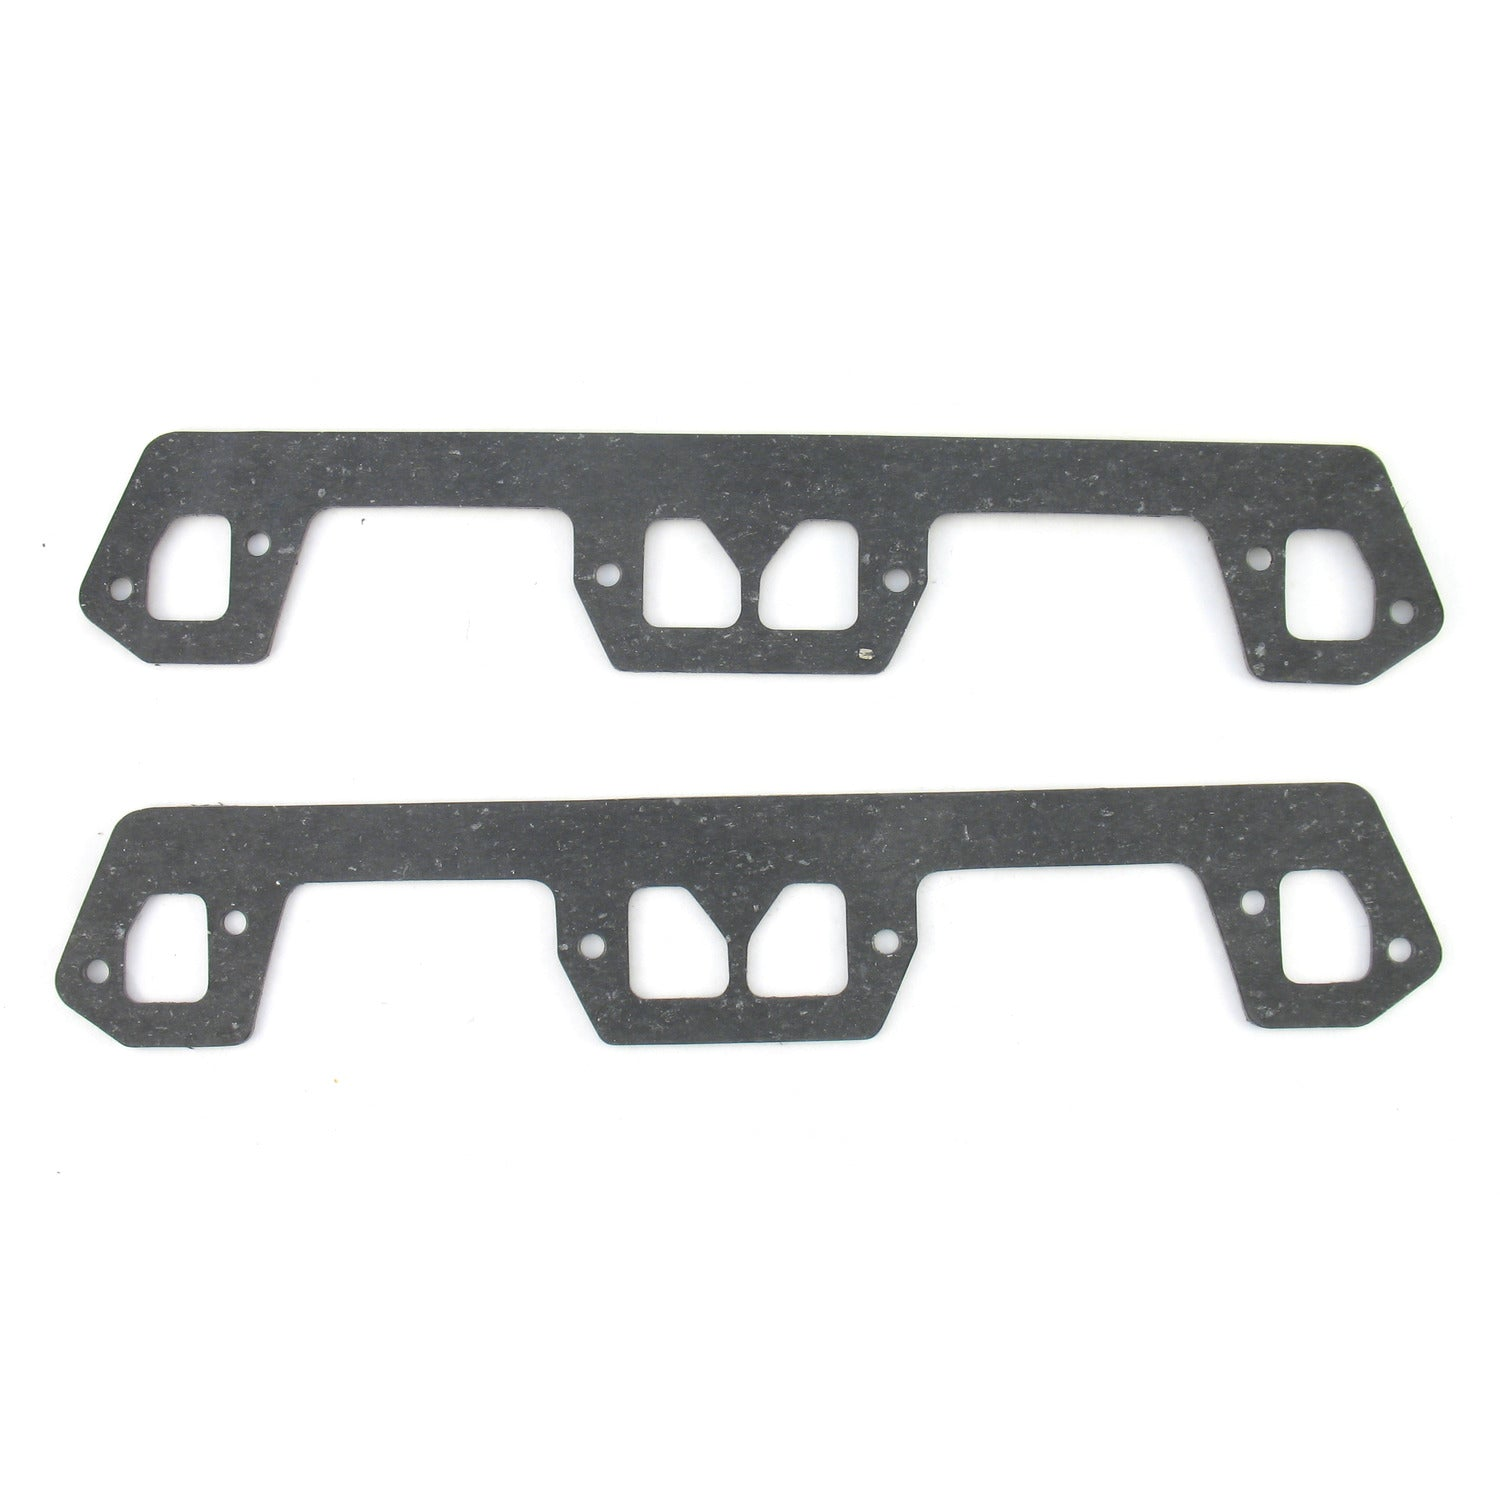 Doug's Headers HG9106 Chrysler 273-360 SAP(same as port) Header Flange Gaskets